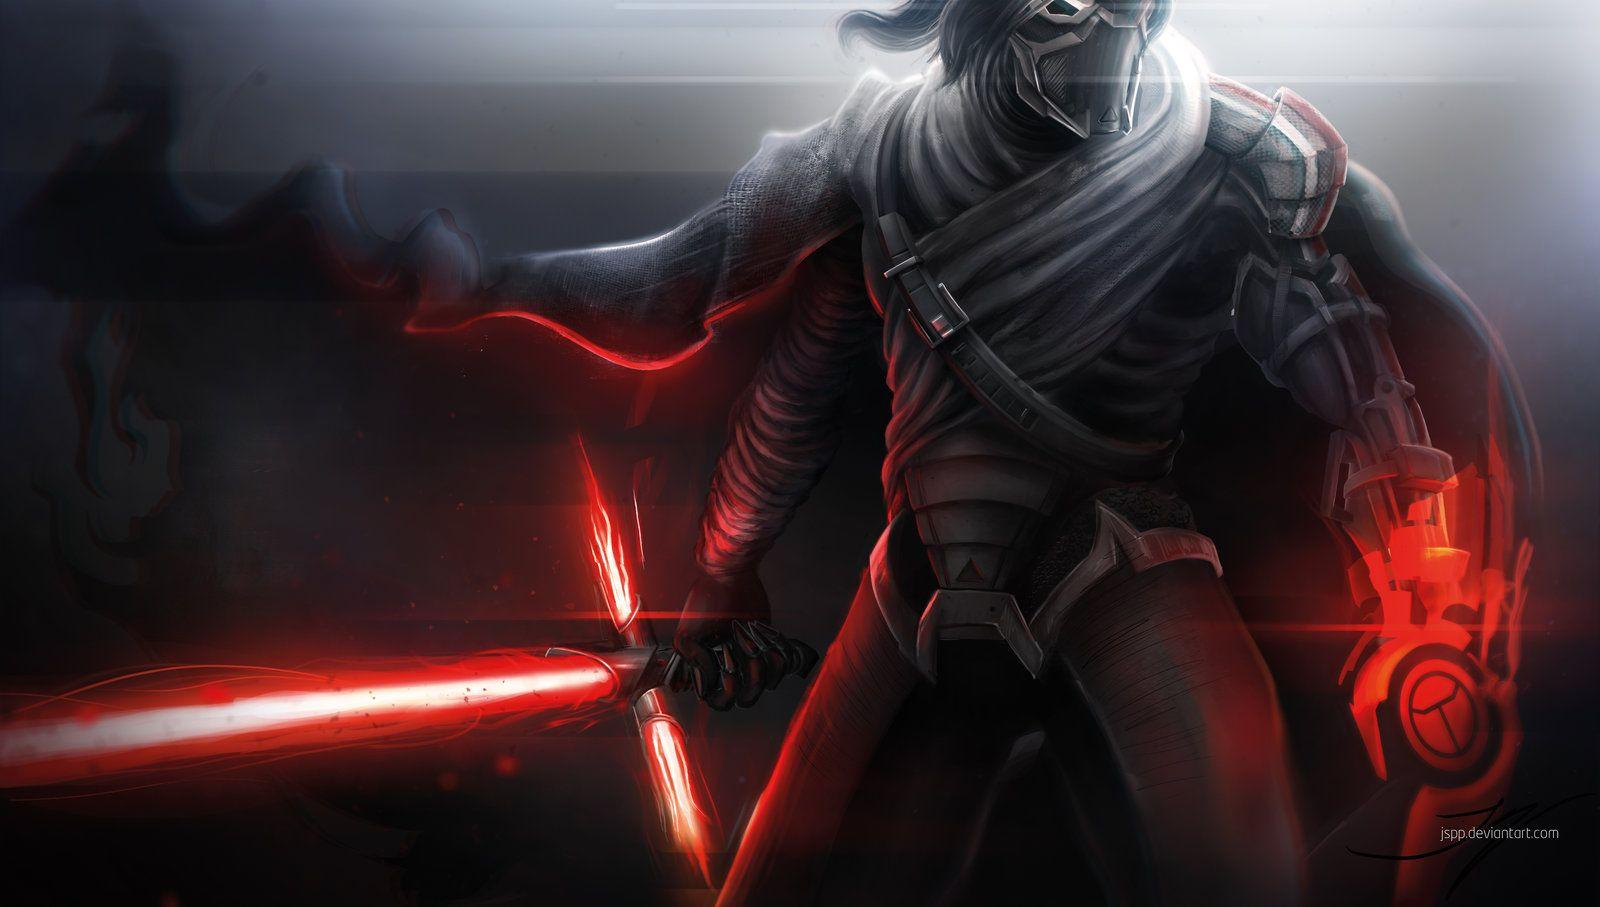 Kylo Ren with a hint of Mass Effect //Wallpapers by jspp